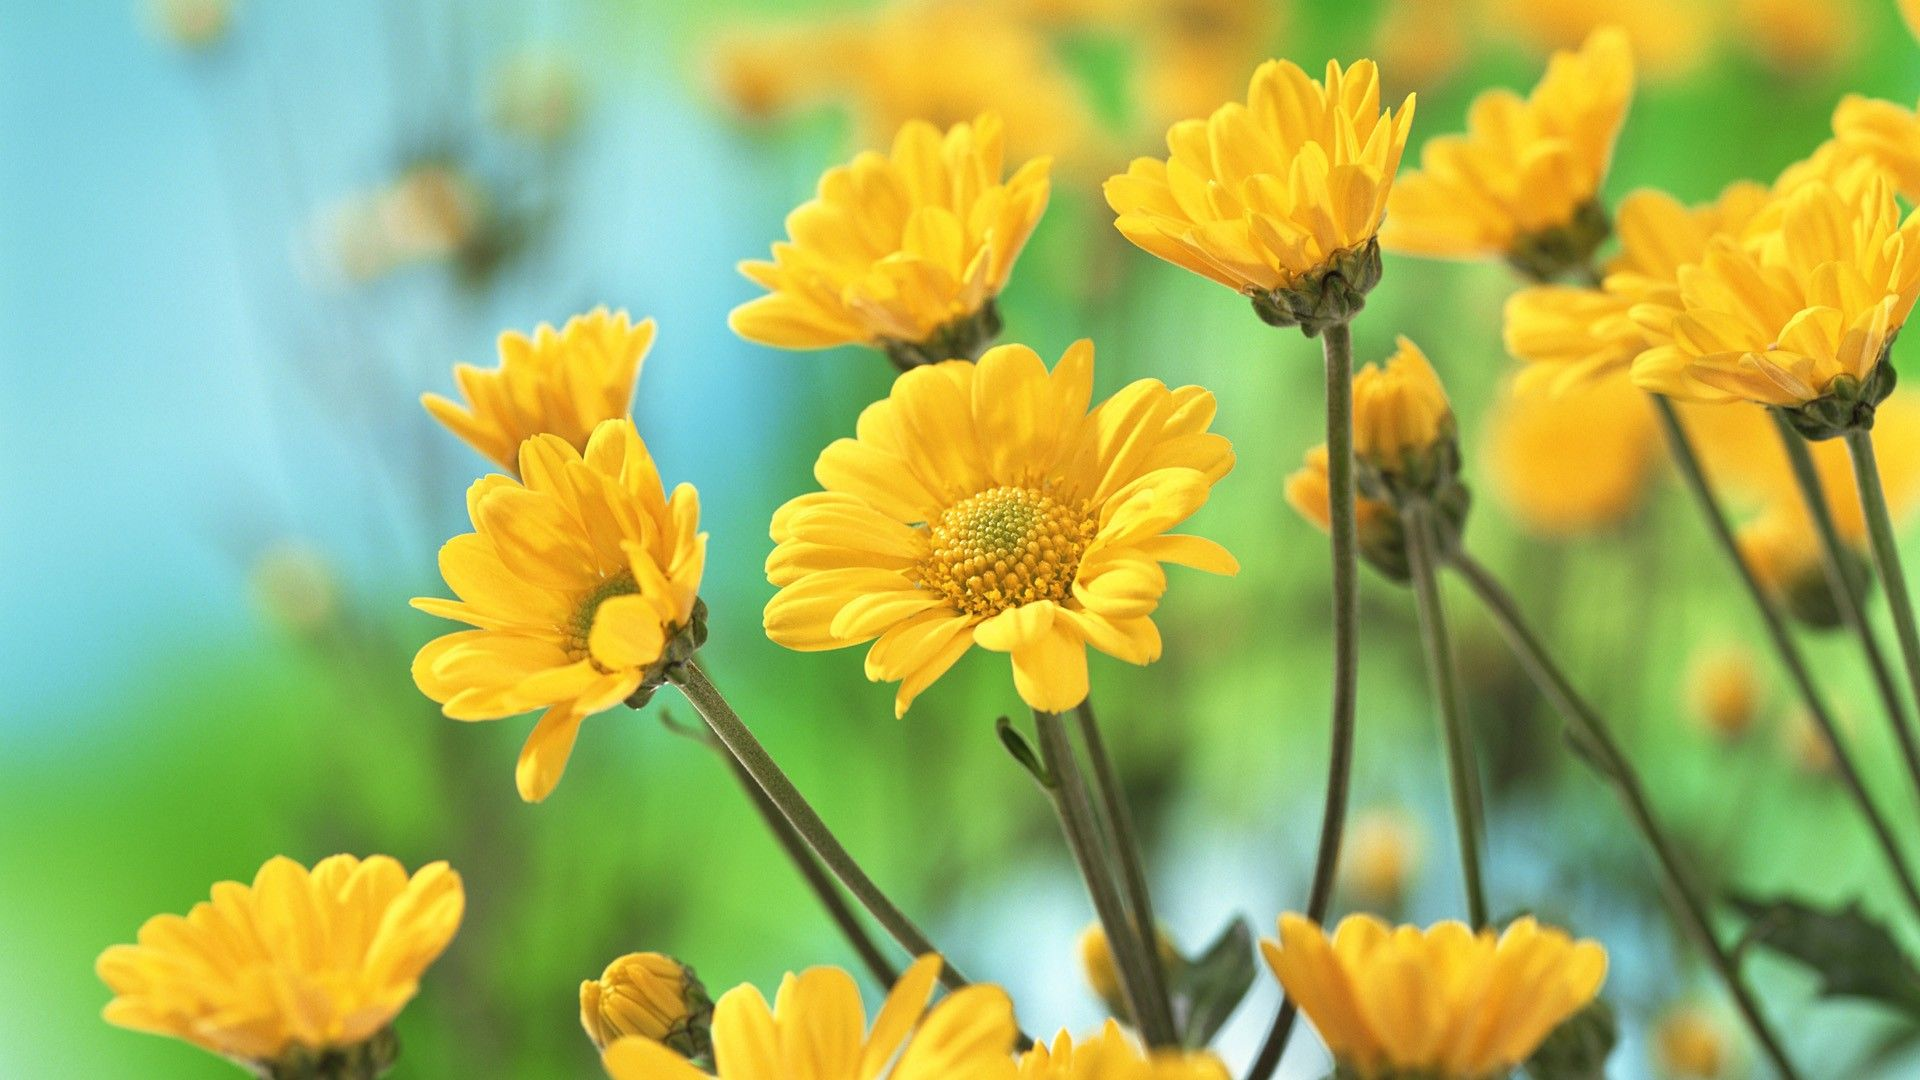 yellow flowers pictures widescreen 2 hd wallpapers | things i love